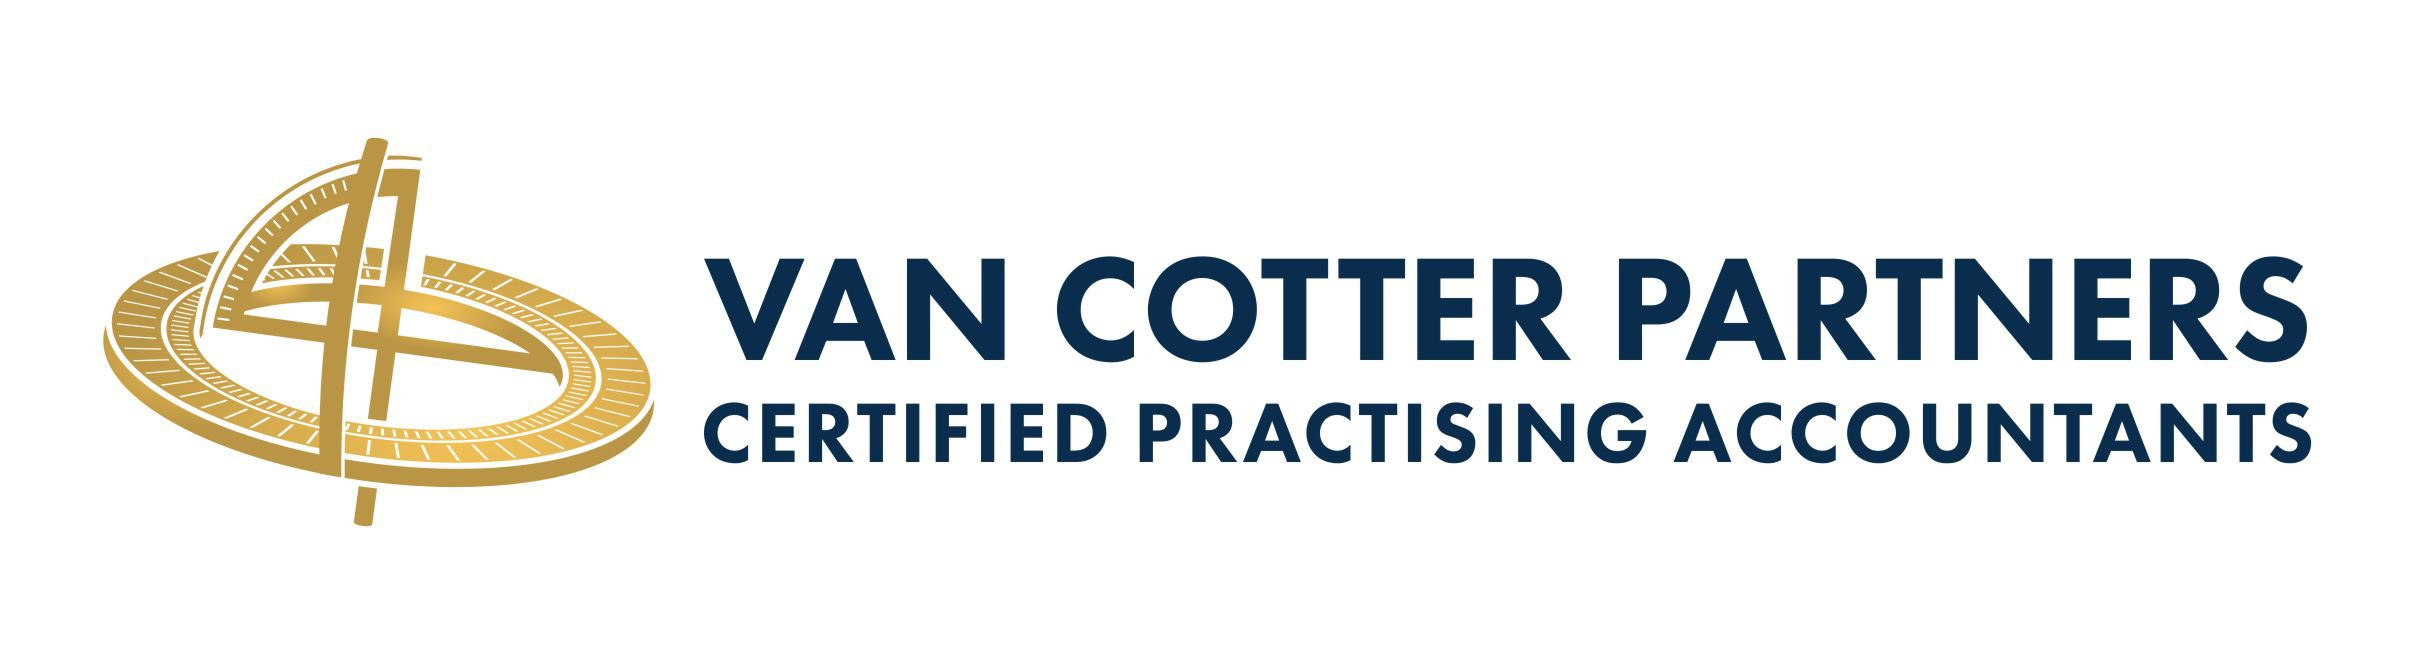 Van Cotter Partners